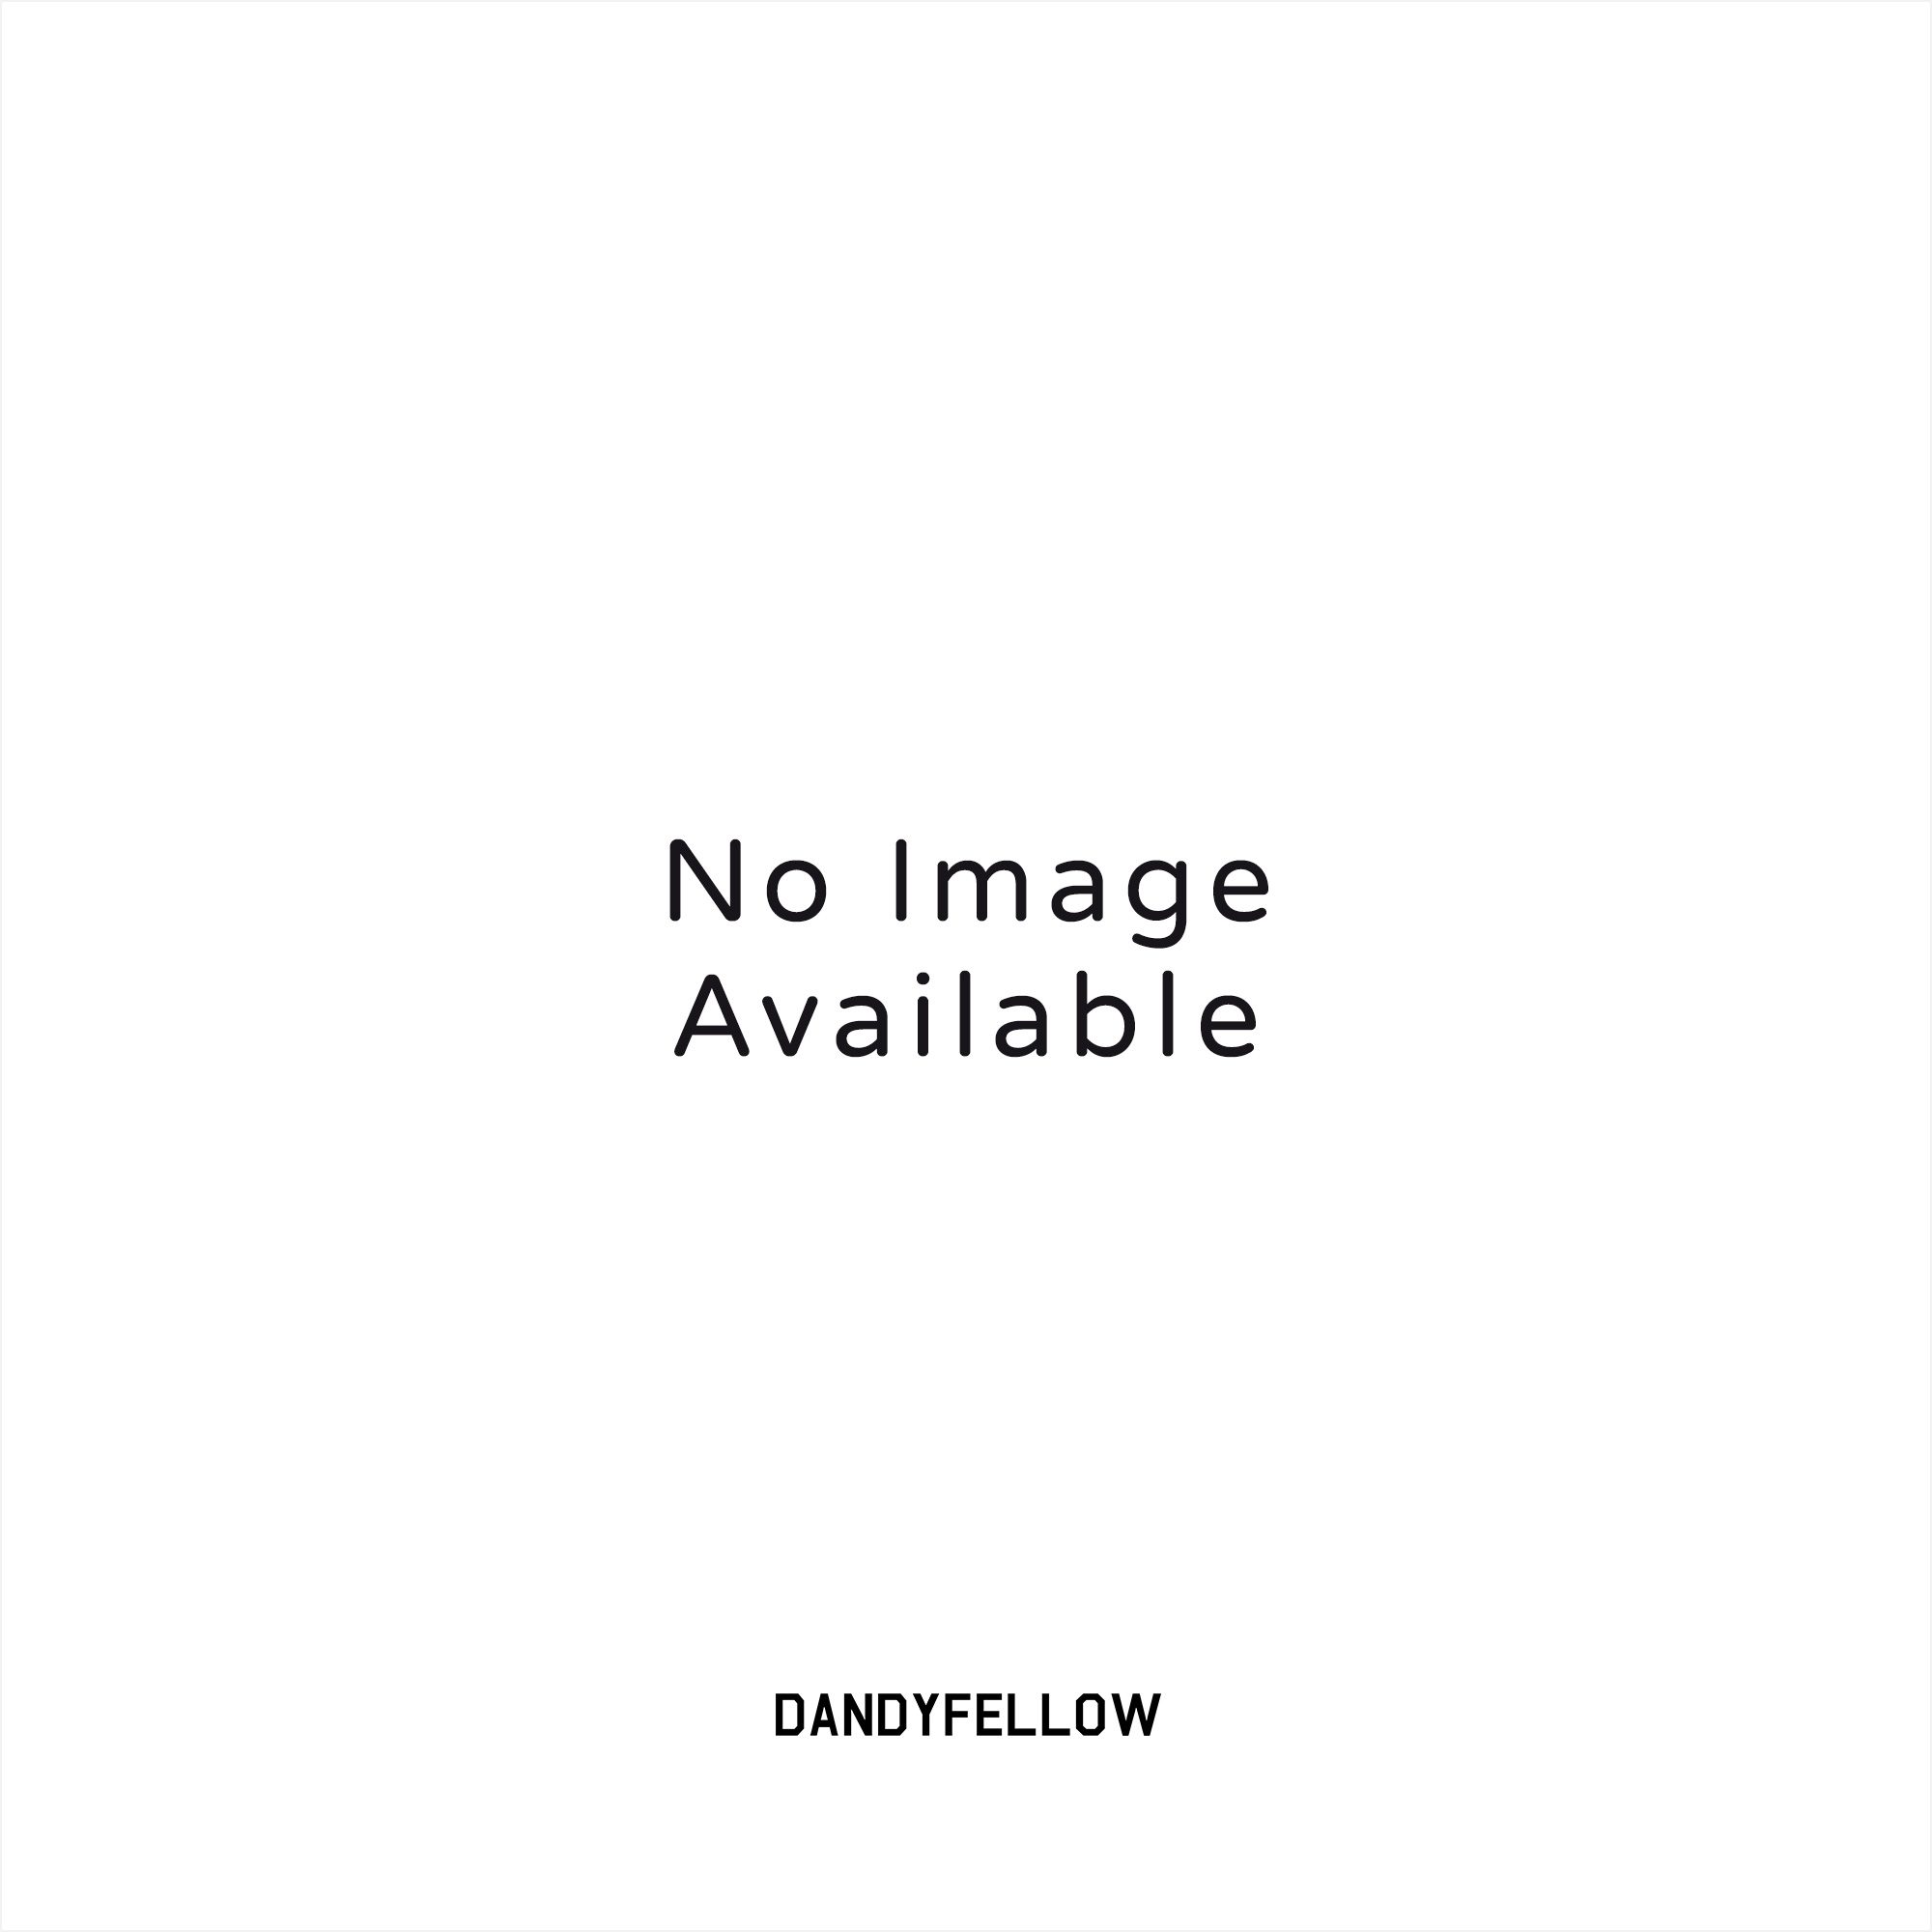 e11258bcaf7 Fred Perry Laurel Wreath Reissues Cable Knitted Shirt